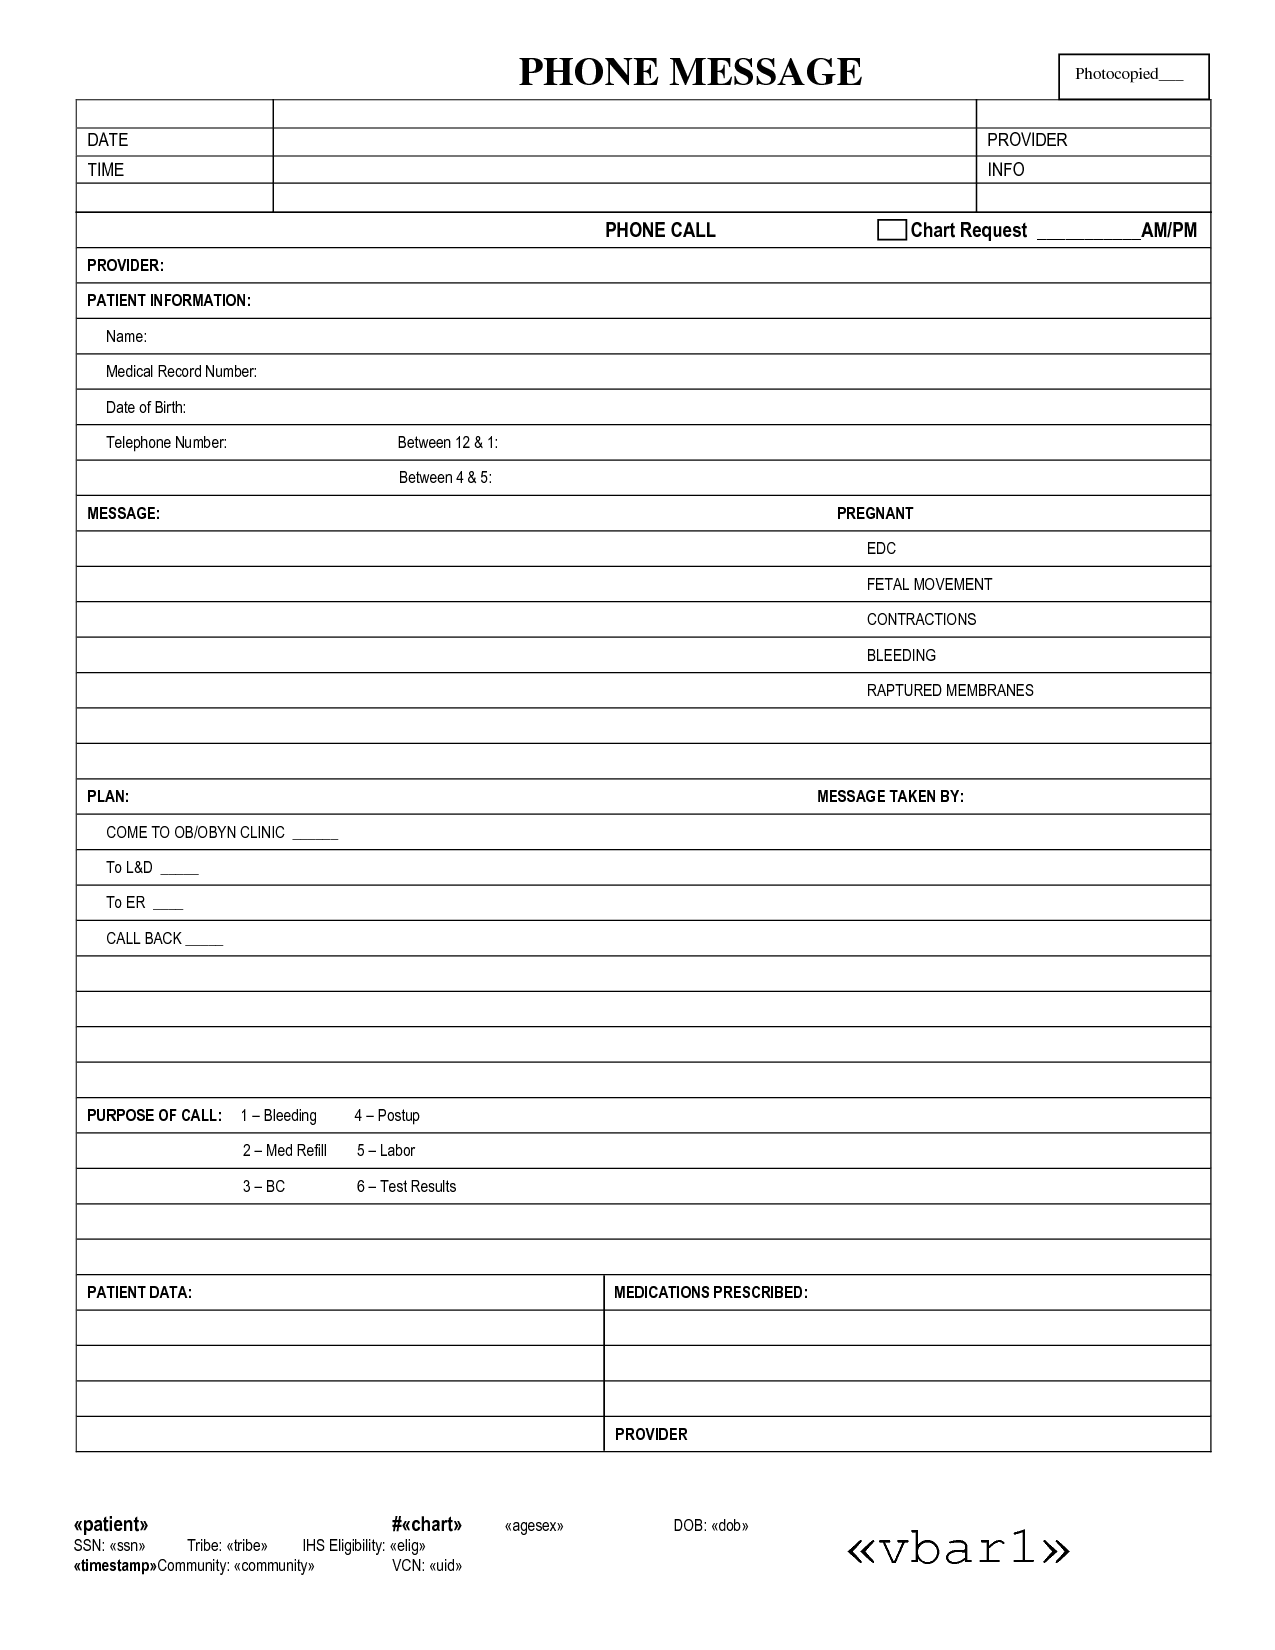 Medical Form For Telephone Message